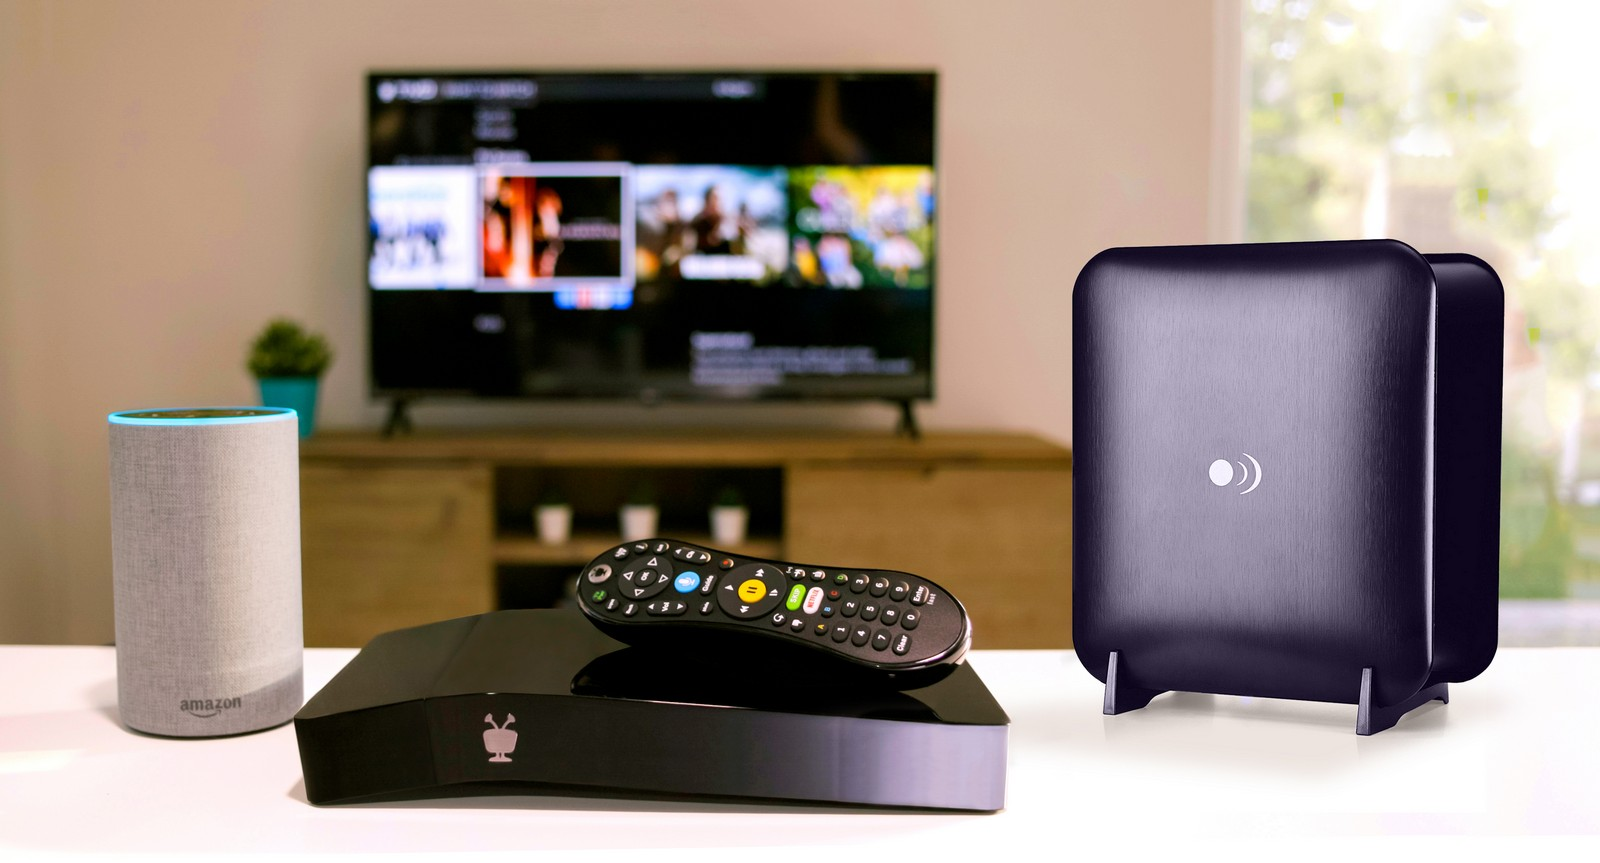 Gear Eye Tracking >> TiVo targets cord-cutters (again) with the Bolt OTA